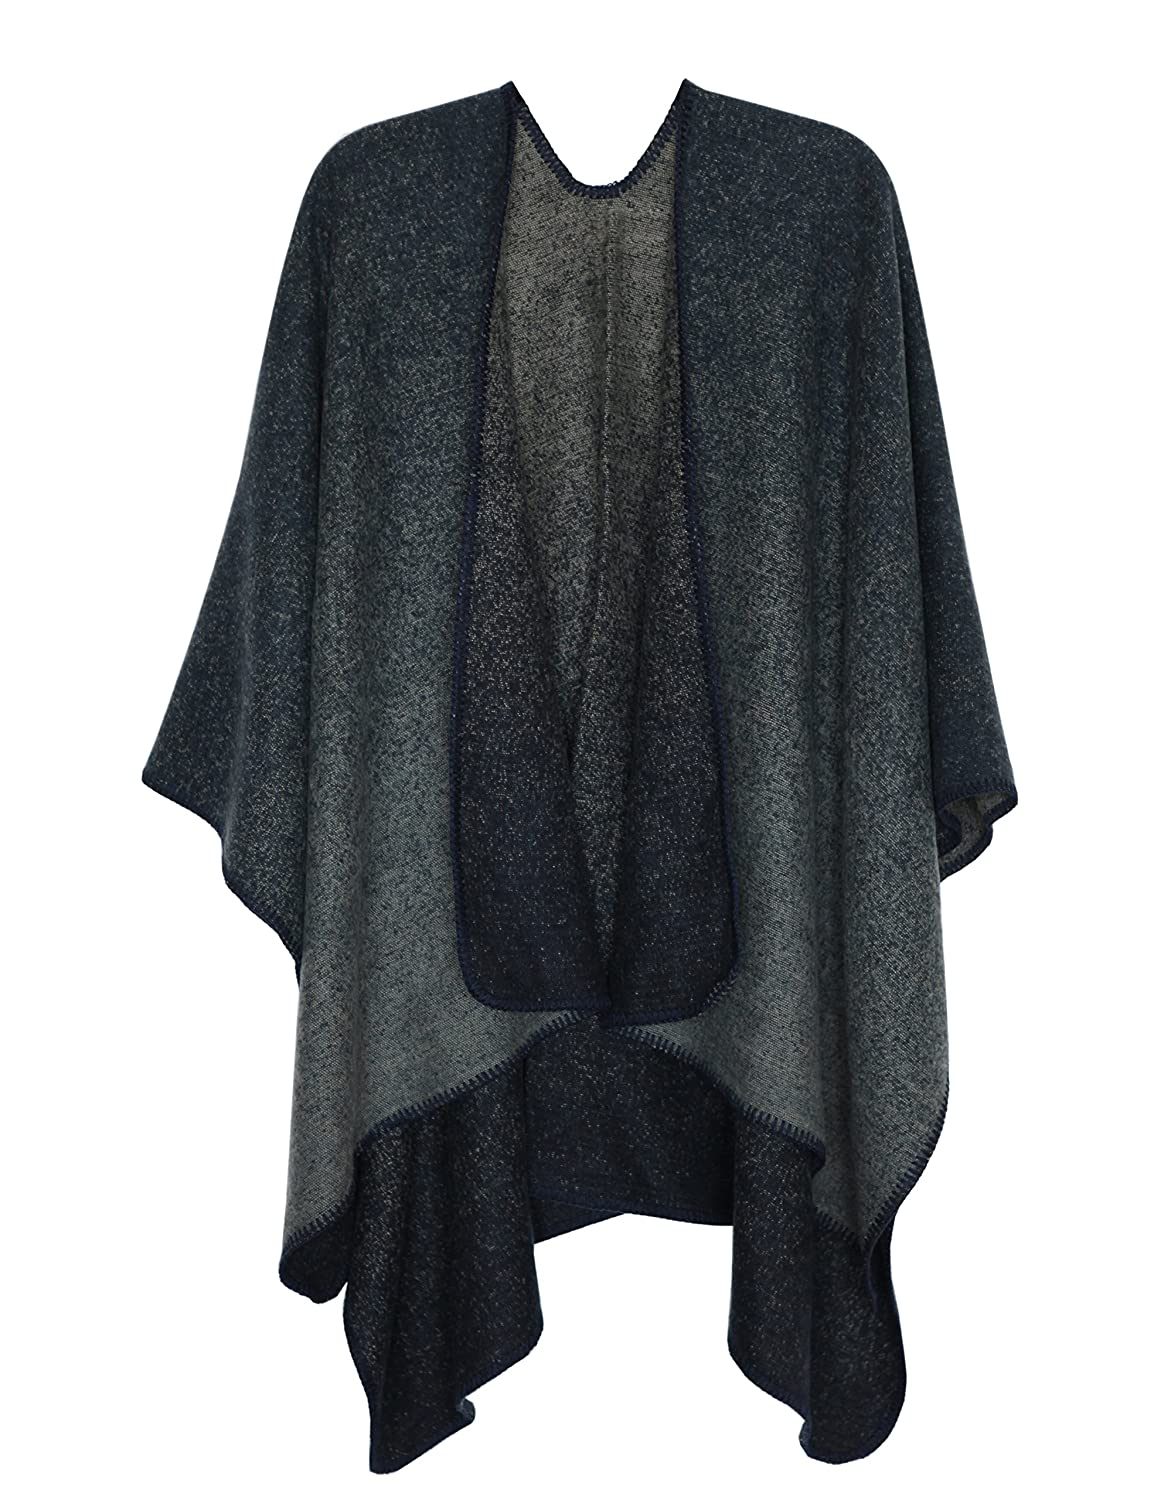 MissShorthair Women's Printed Shawl Wrap Fashionable Open Front Poncho Cape 2018CPoncho-1